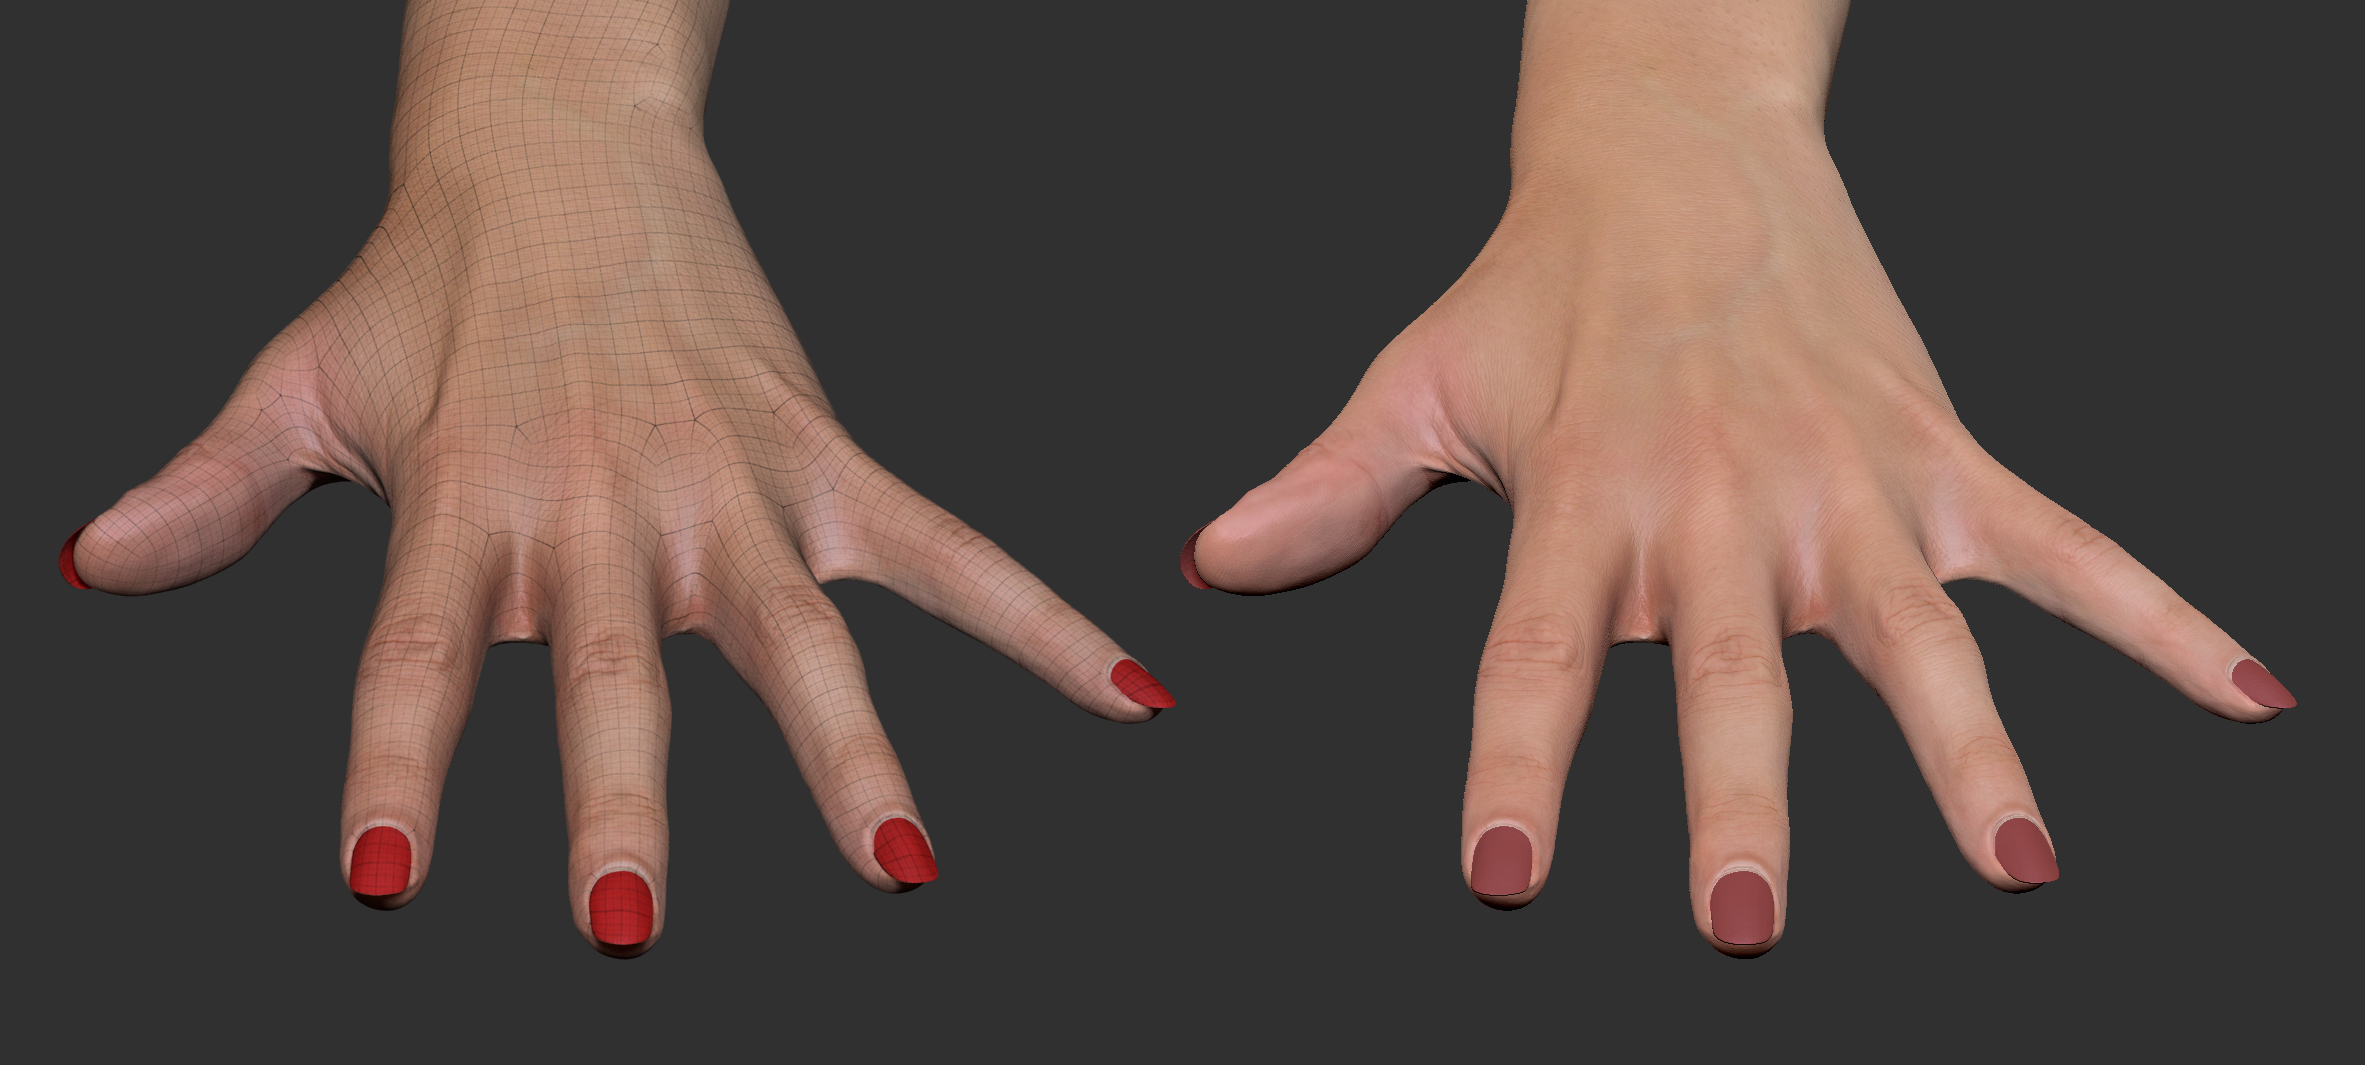 femaleHands.jpg